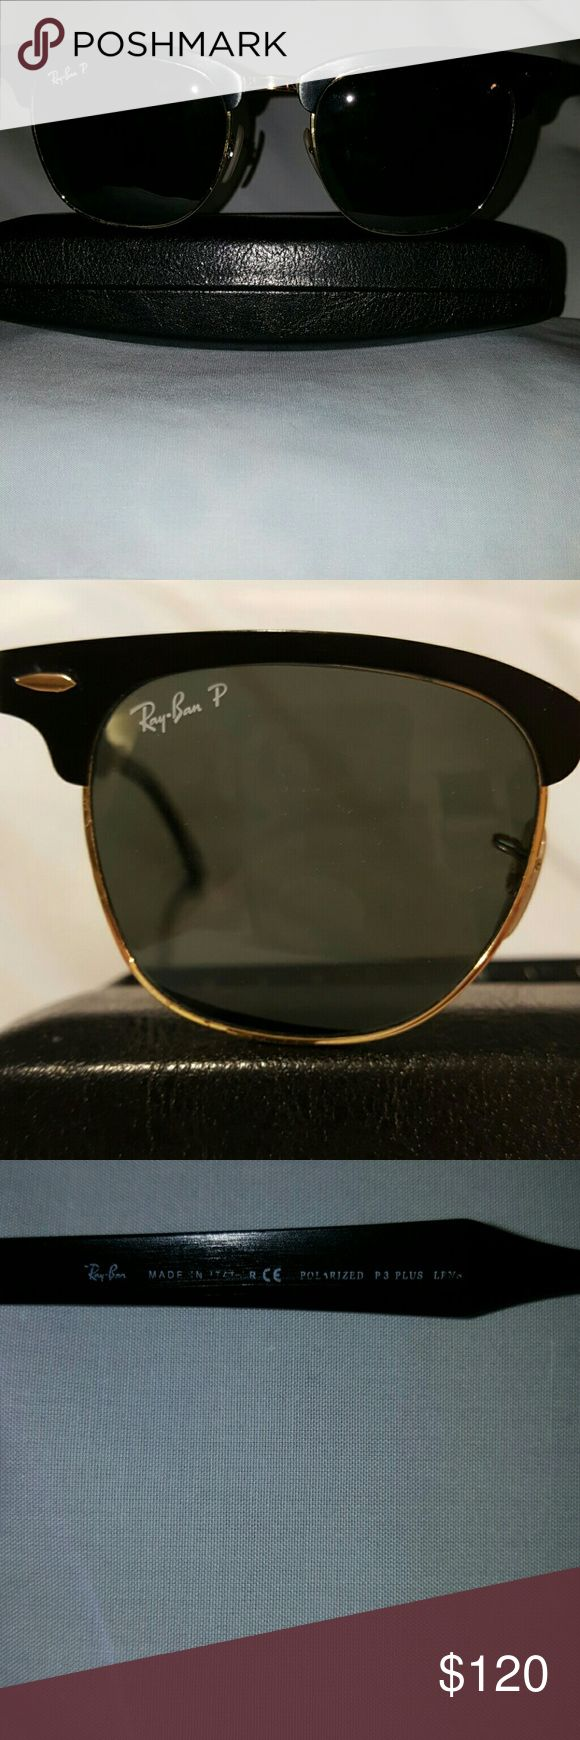 Polarized Club master Ray Bans Polarized Clubmaster Ray Bans made in Italy. Nice condition. Joints smooth and tight ( No Ray Ban case) Ray-Ban Accessories Sunglasses